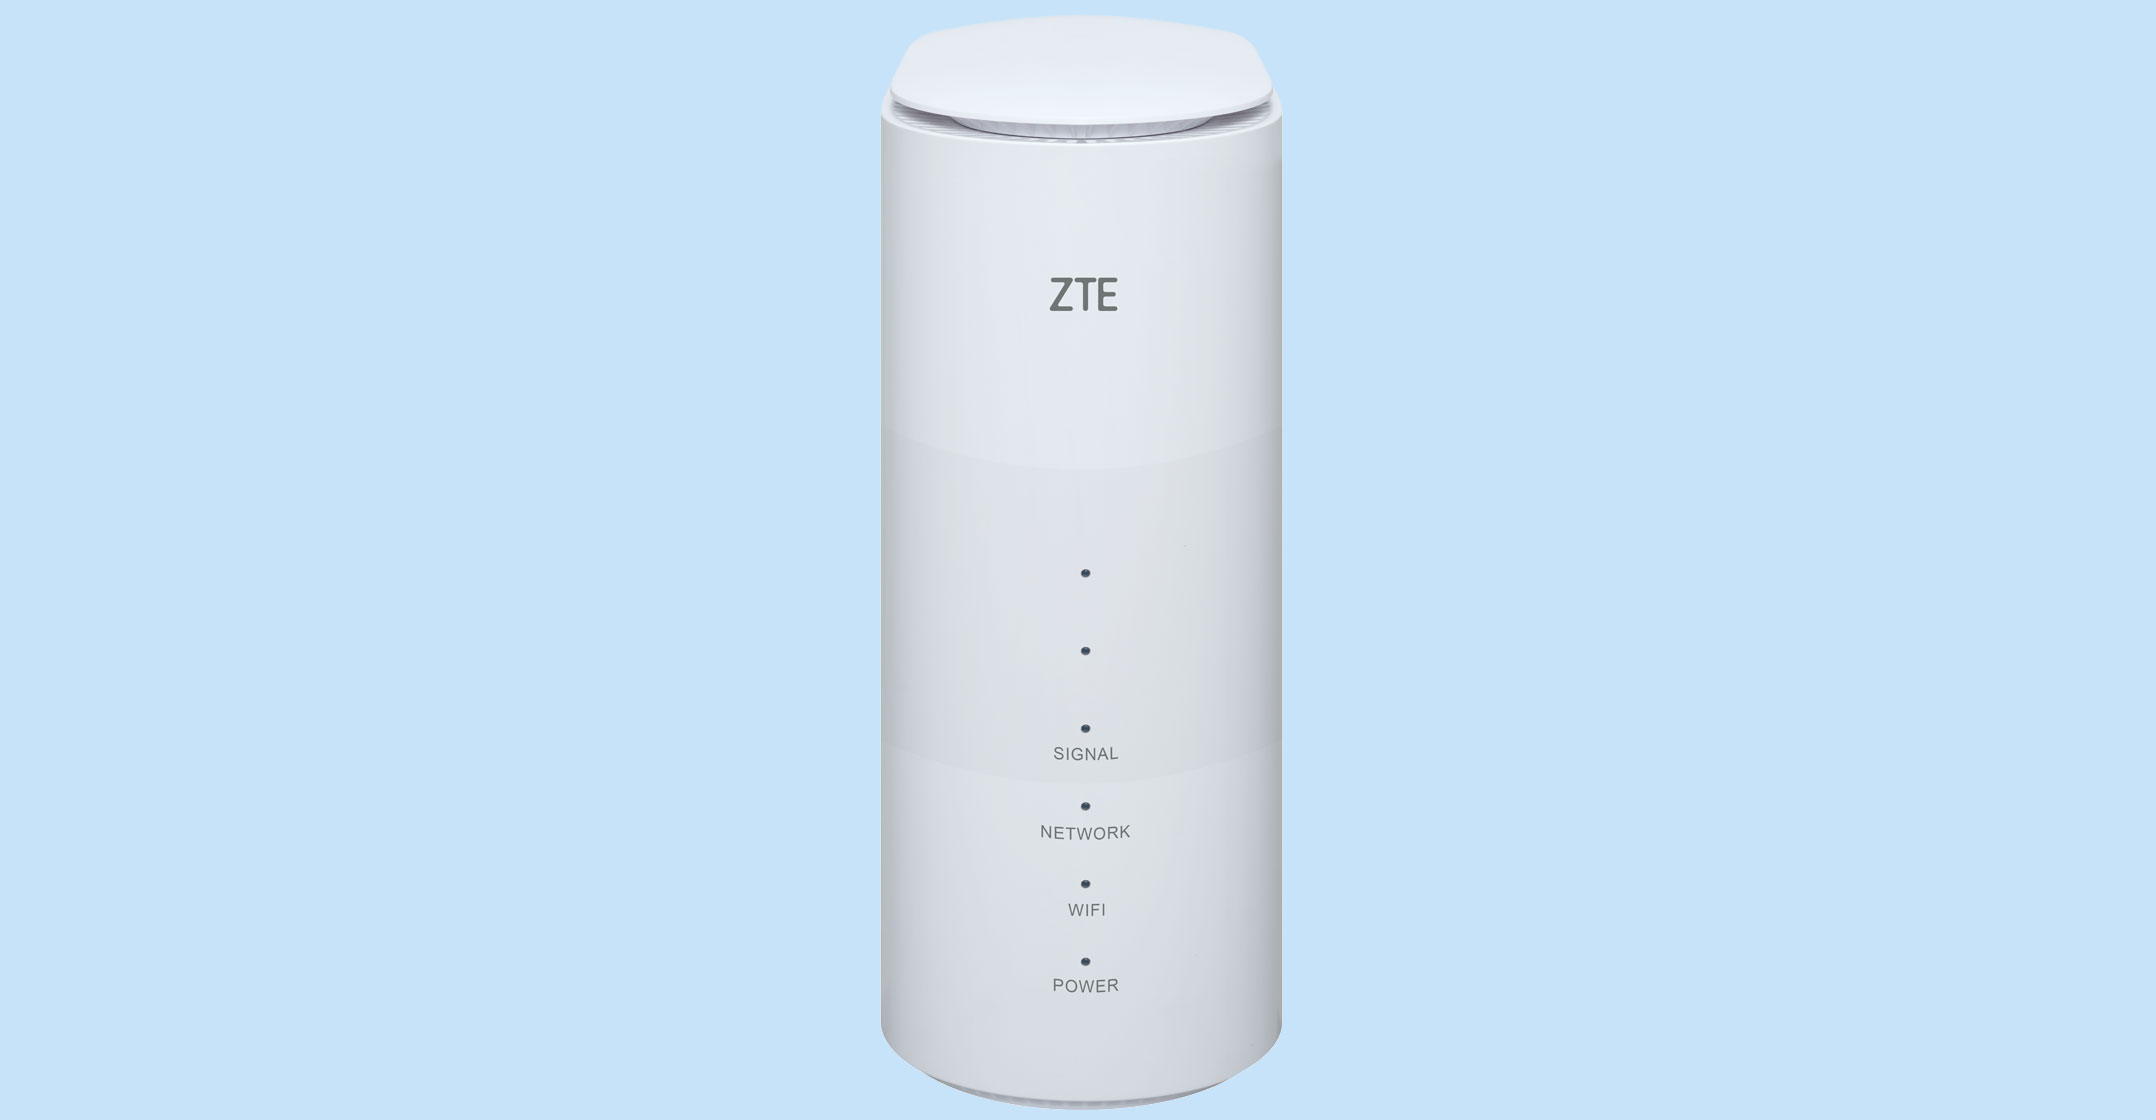 ZTE launches first 5G indoor router in South Africa - TechCentral